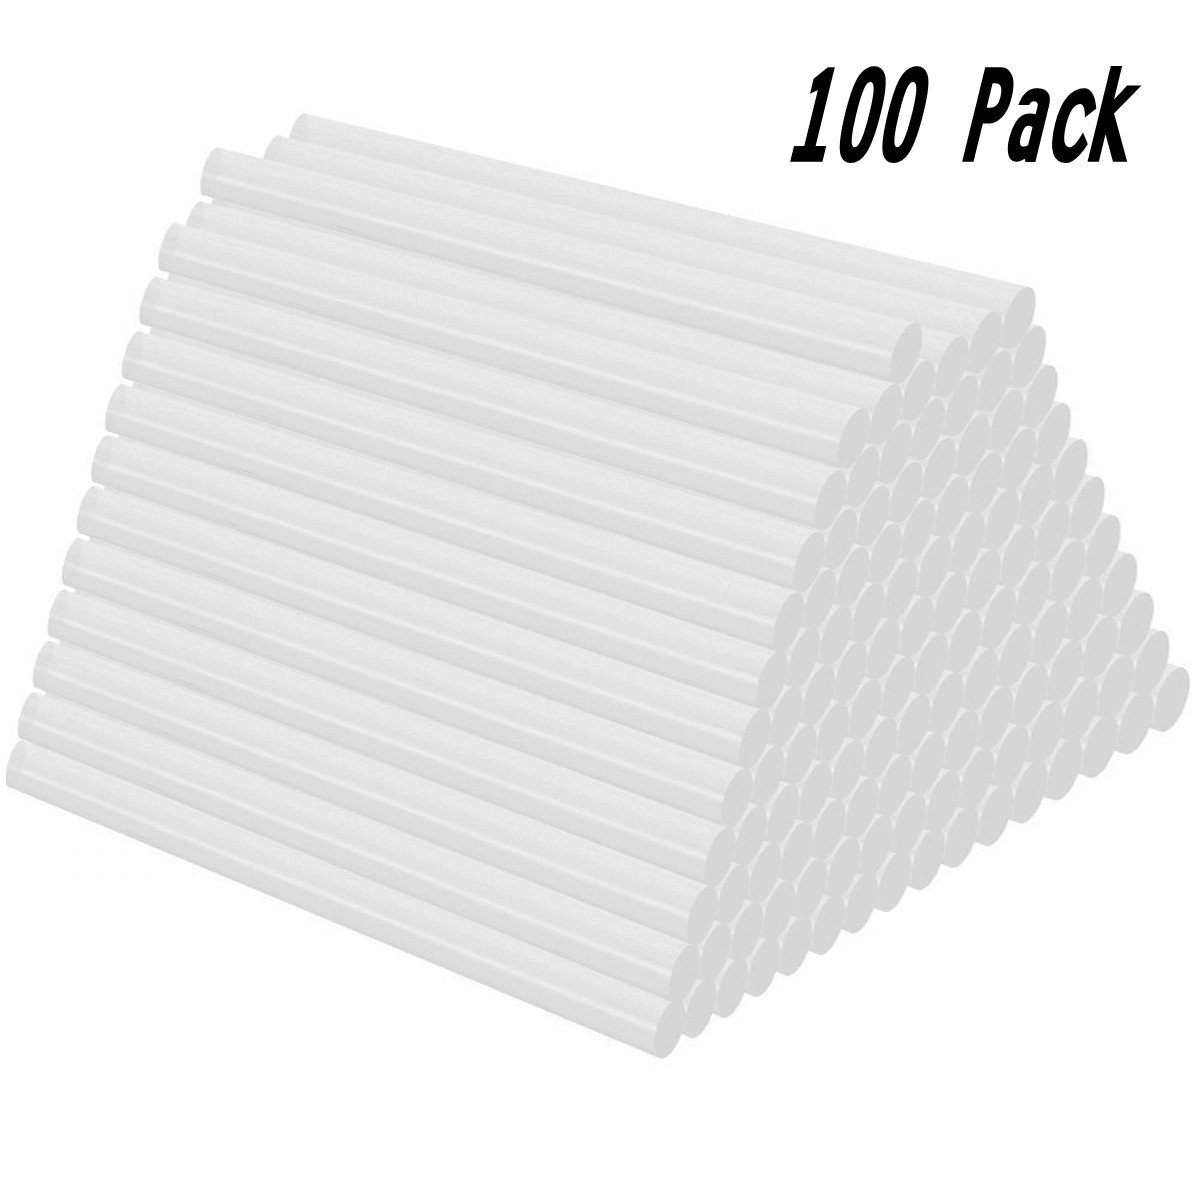 Joykey 100 Pcs bâtons de colle Bâtons de pistolet à colle thermofusible 7x100 mm bâtons de colle de rechange, transparent